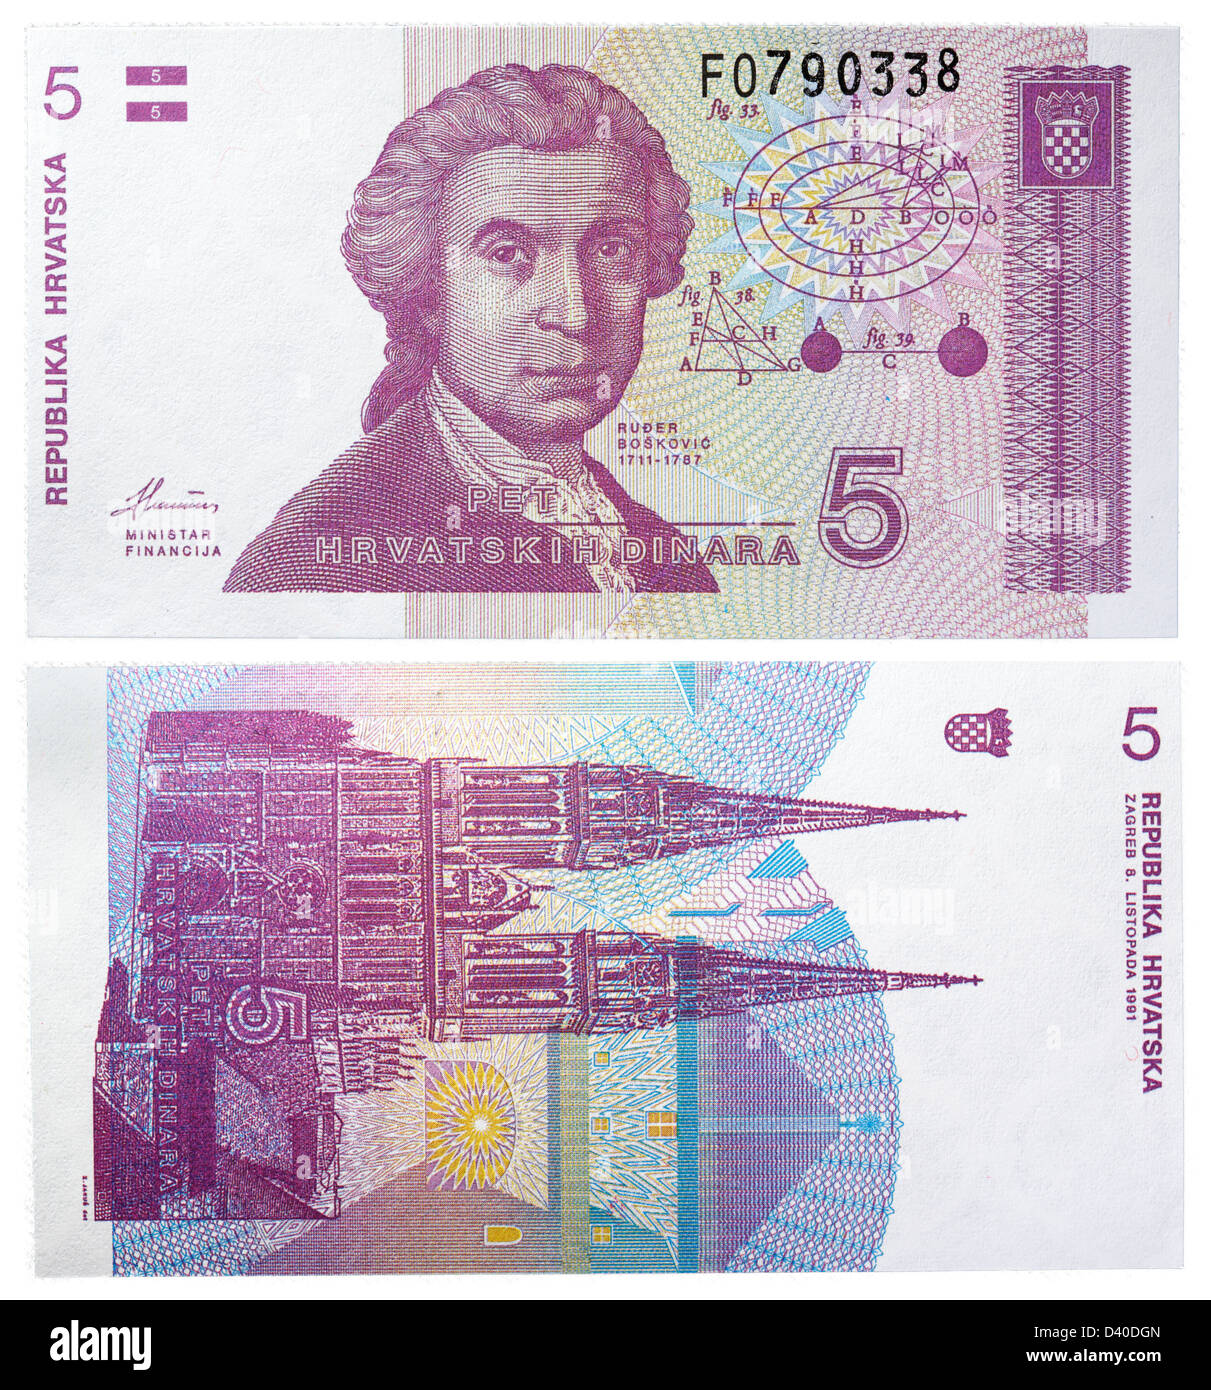 5 Dinara banknote, Ruder Josip Boskovic and Zagreb cathedral, Croatia, 1991 Stock Photo